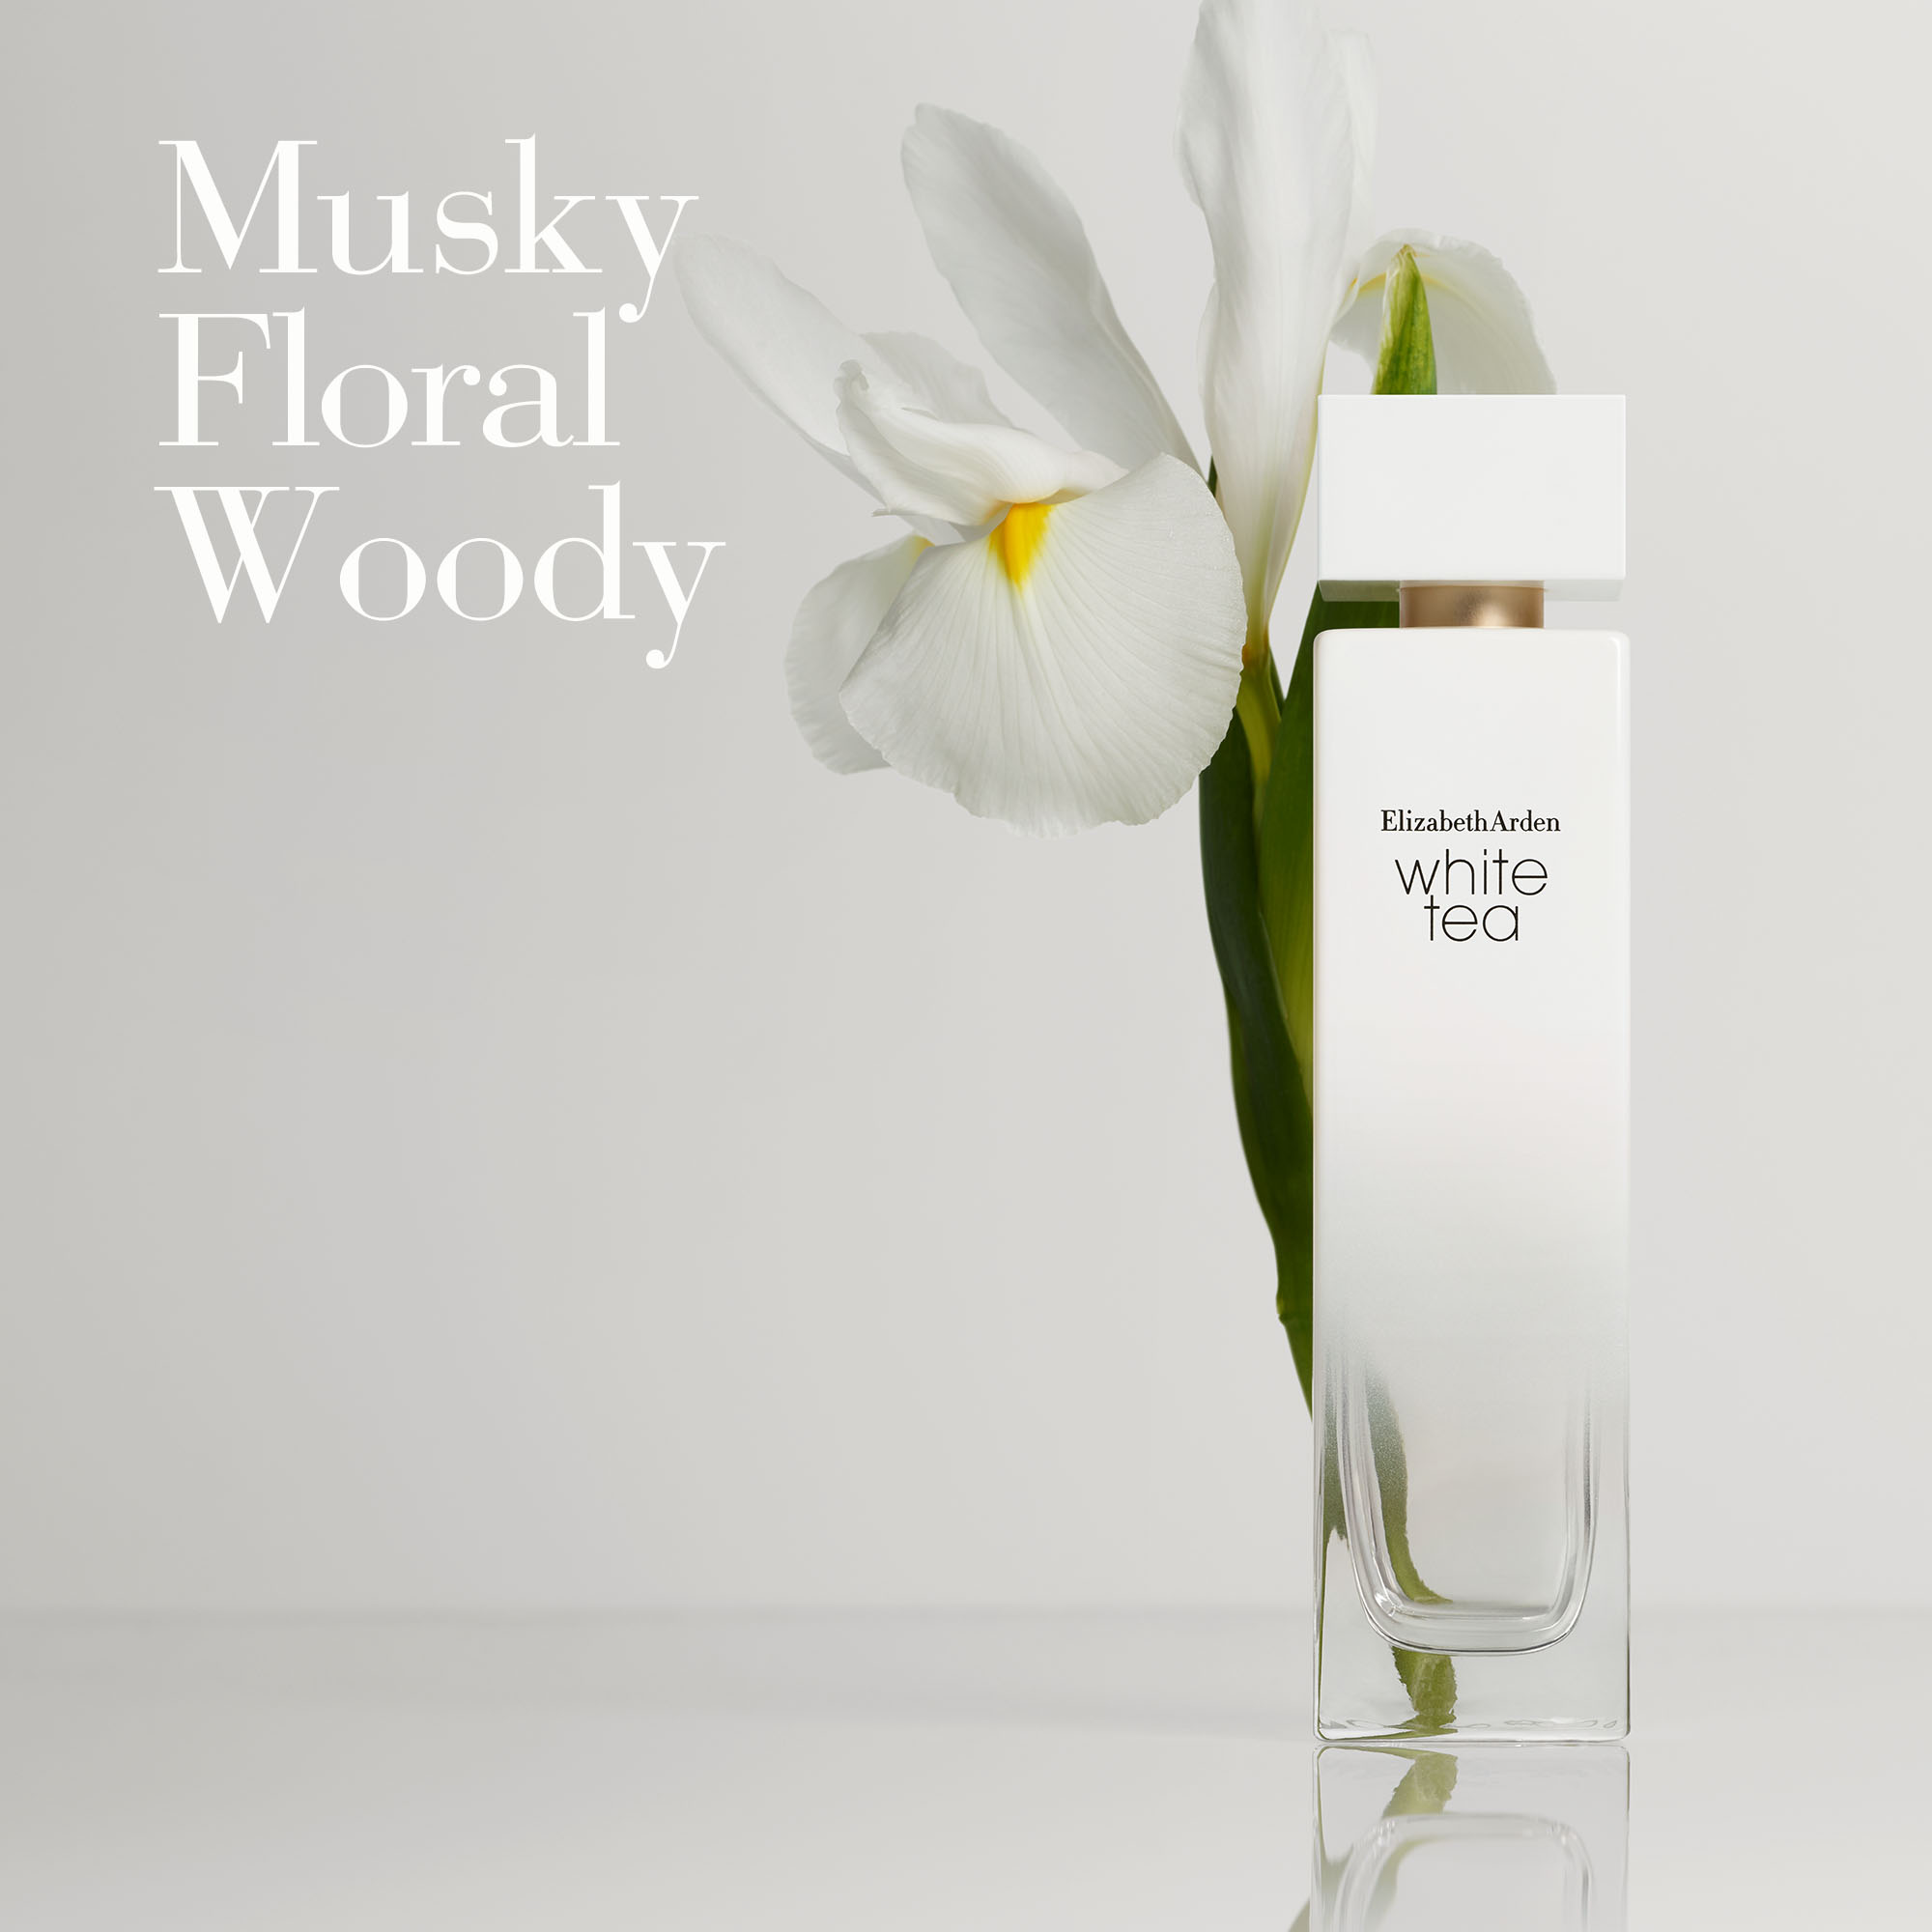 Olfactory: Musky, Floral and Woody